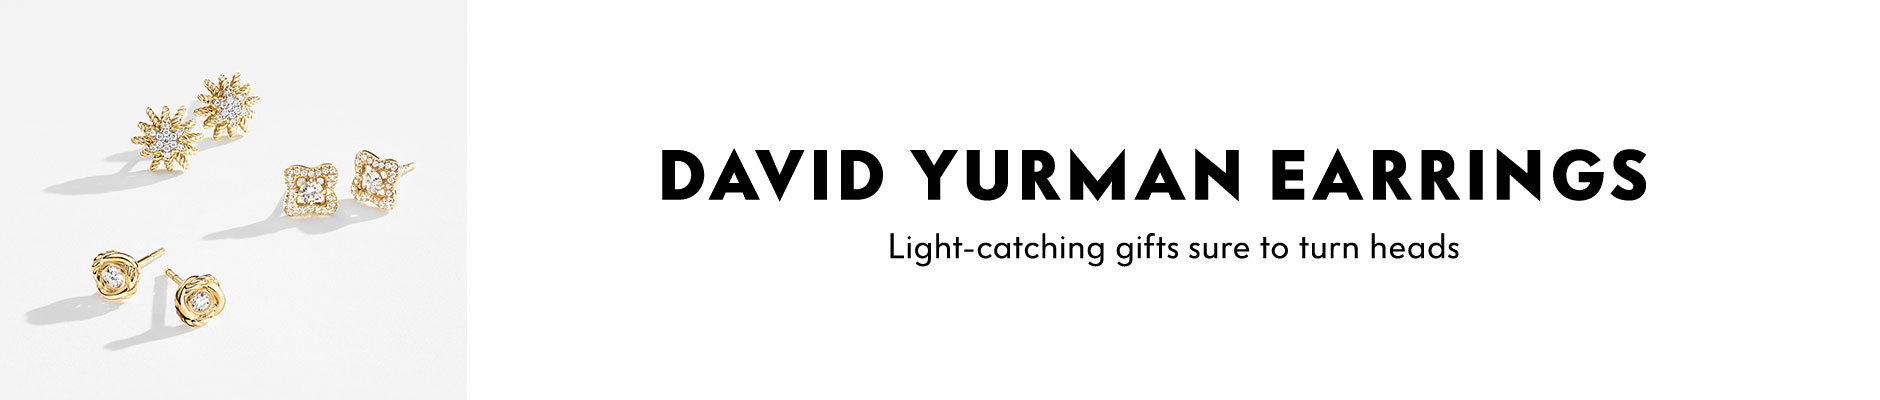 David Yurman Earrings - Light-catching gifts sure to turn heads